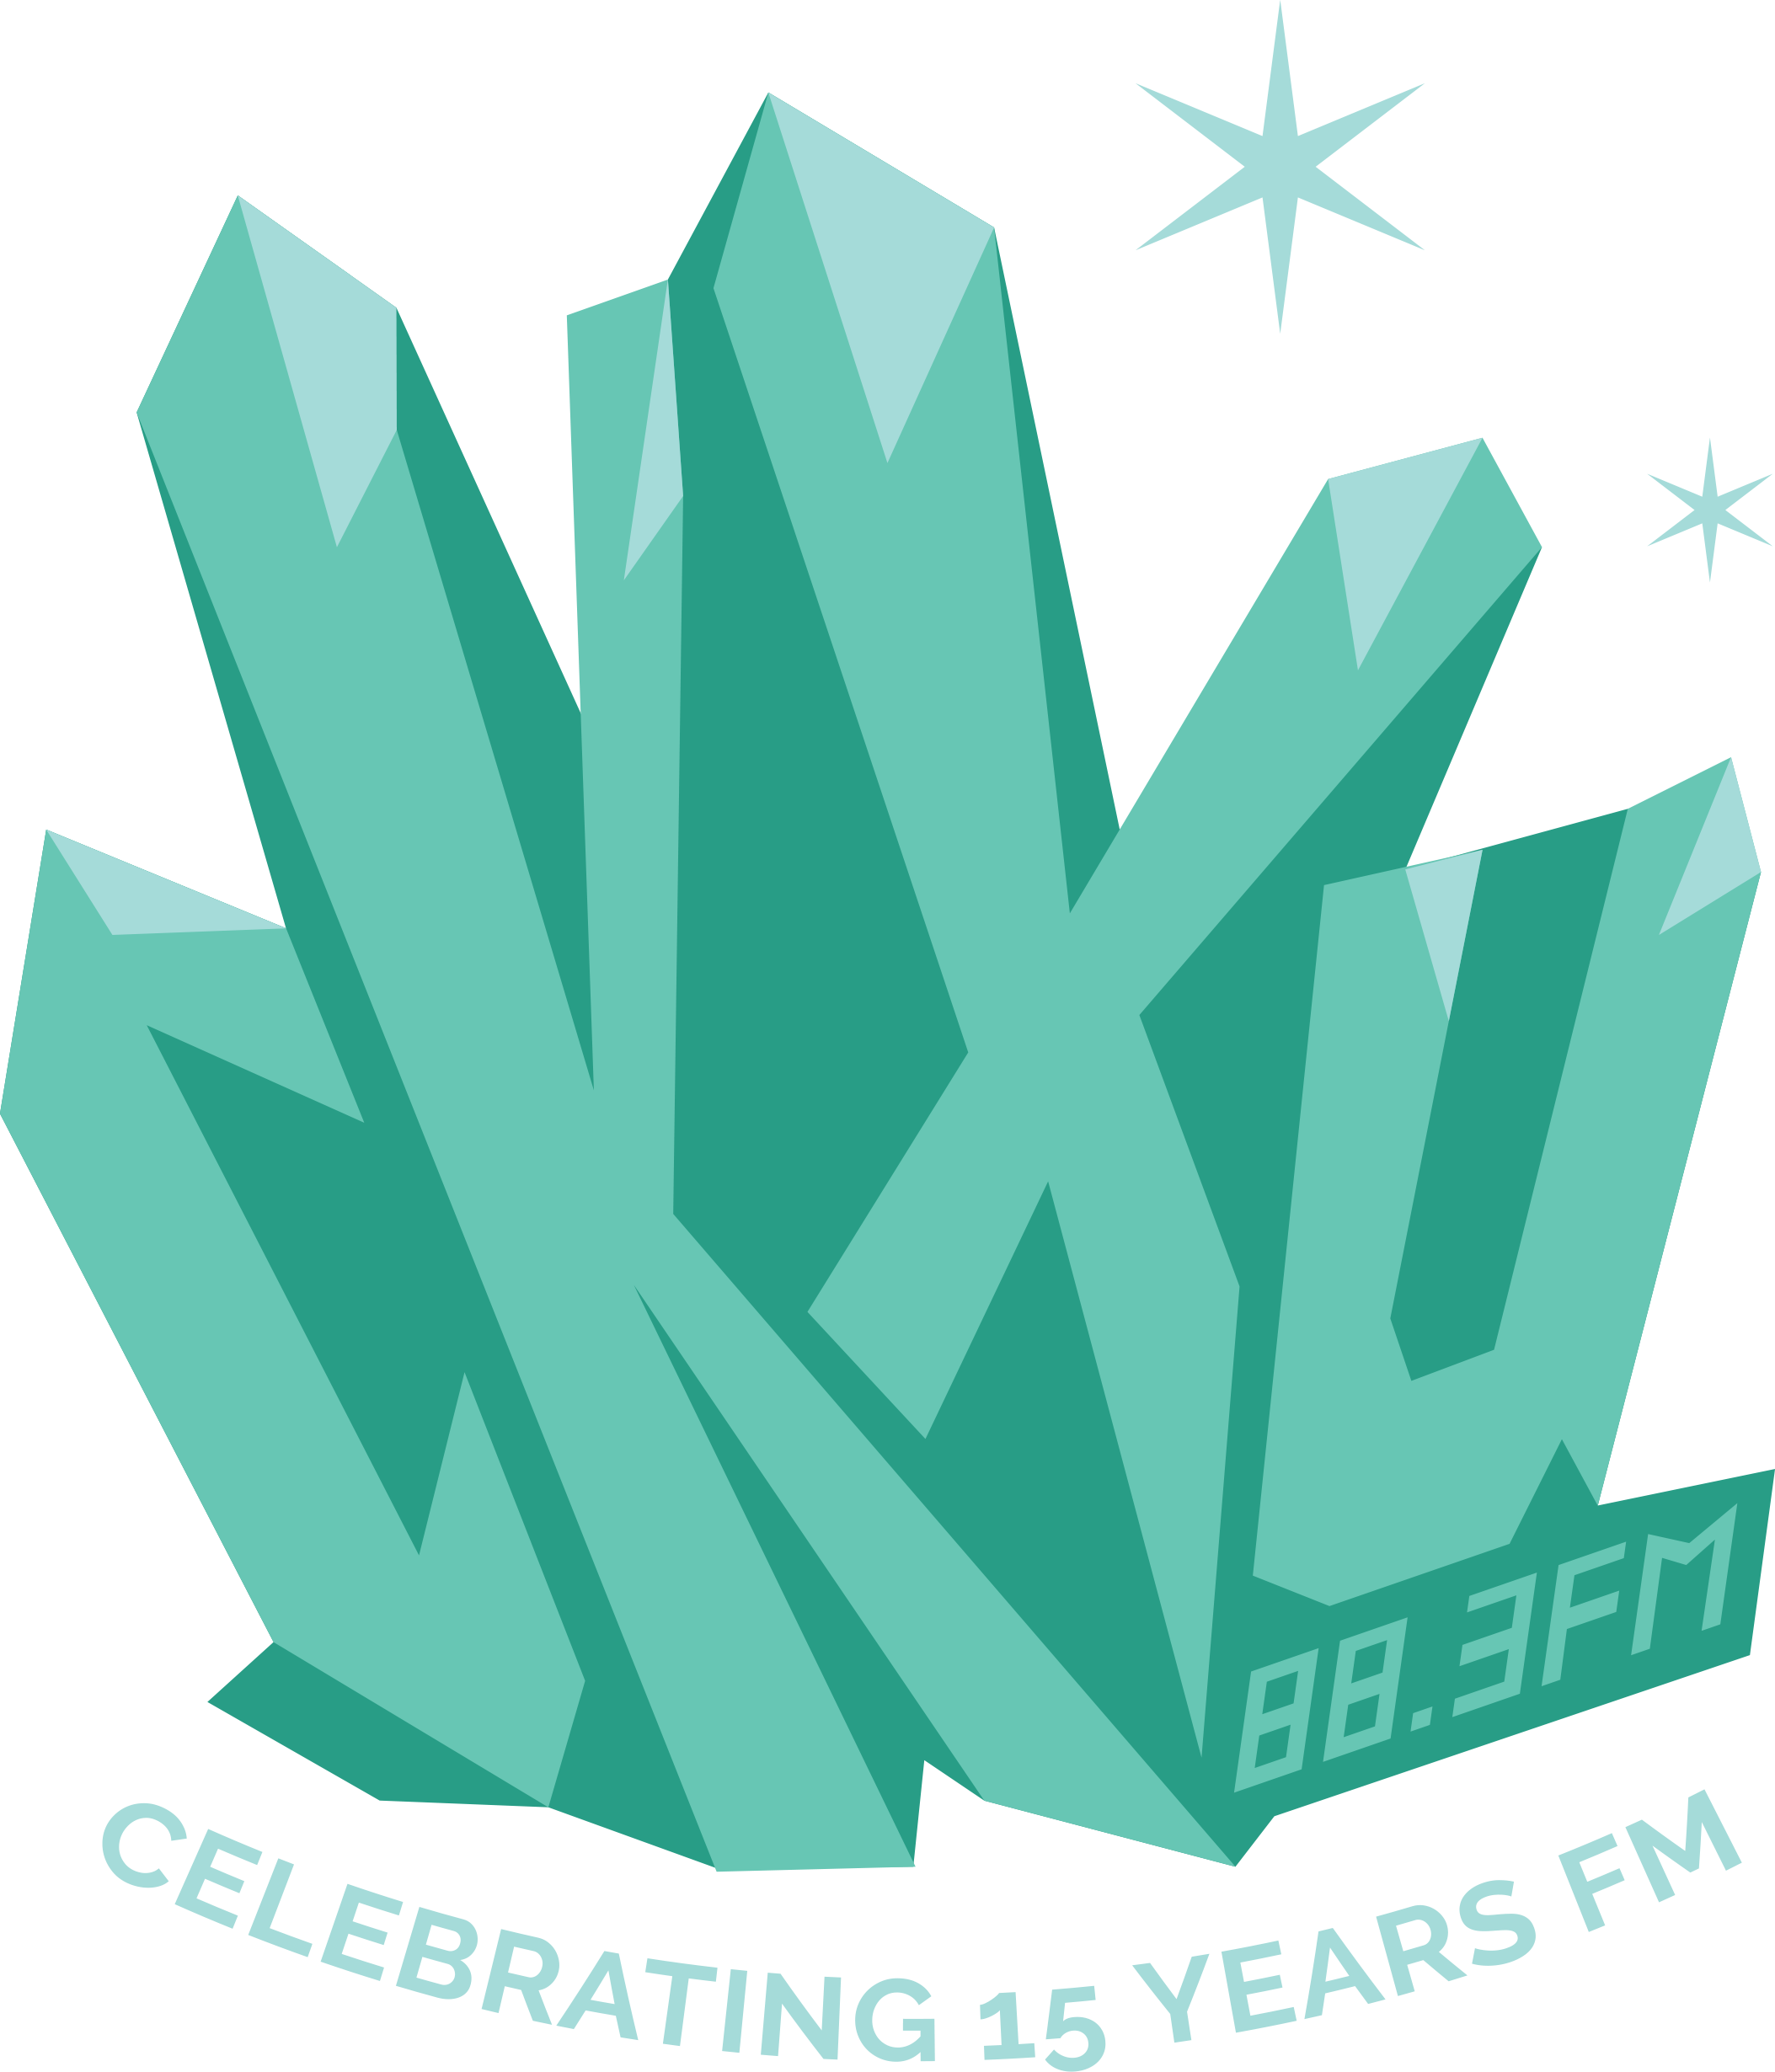 CKXU 88.3 FMCelebrating 15yrs FM2004 - Present - CKXU 88.3 FM invites listeners, supporters, volunteers, and the general community to celebrate it's 15yr anniversary on the FM dial at their specially curated Summer Sessions! Featuring talented local musicians, limited edition CKXU 15yr anniversary merch, and a 3-month long radio celebration, don't miss out on this anniversary celebration!